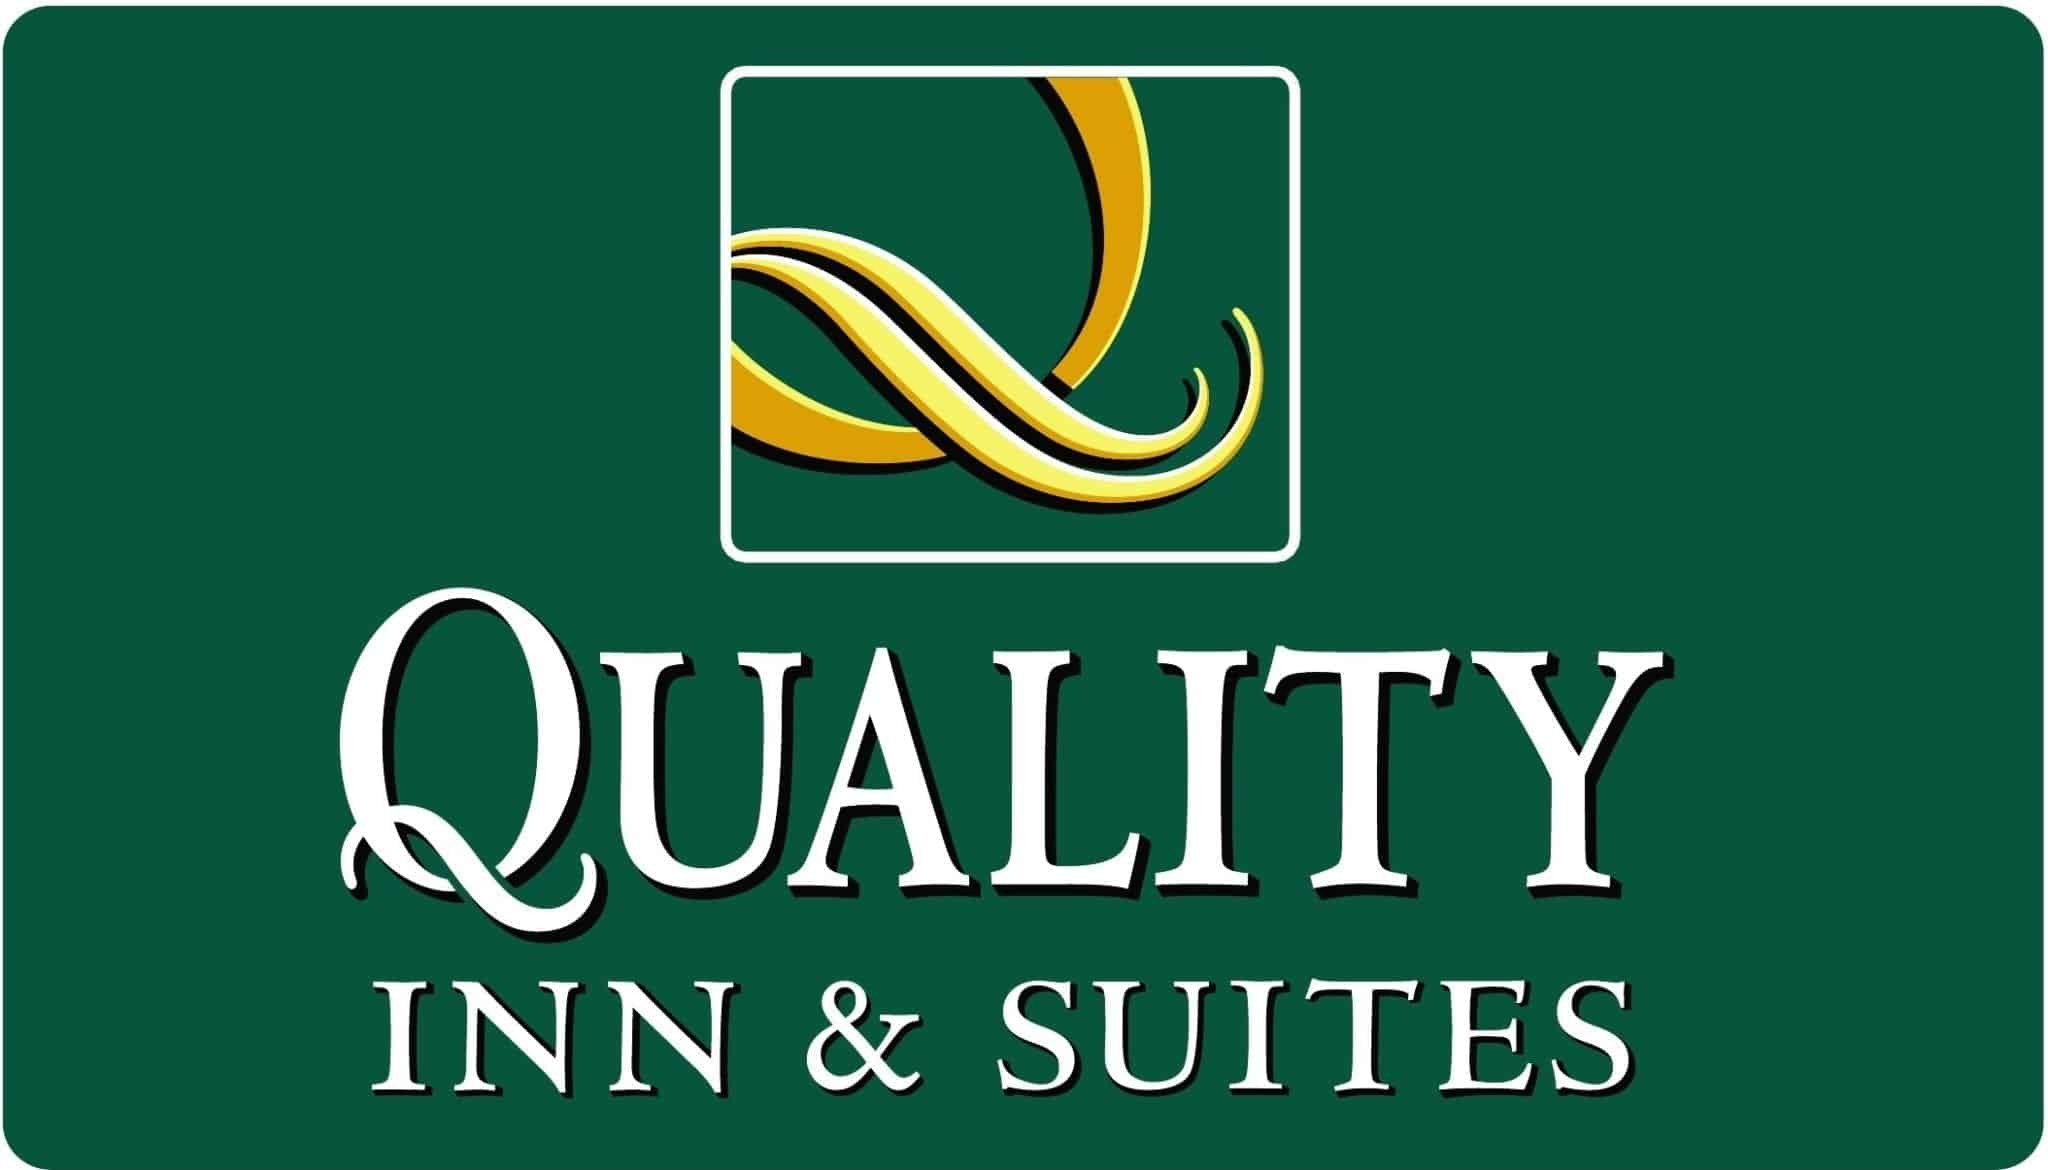 Quality Inn & Suites in Greensboro, NC